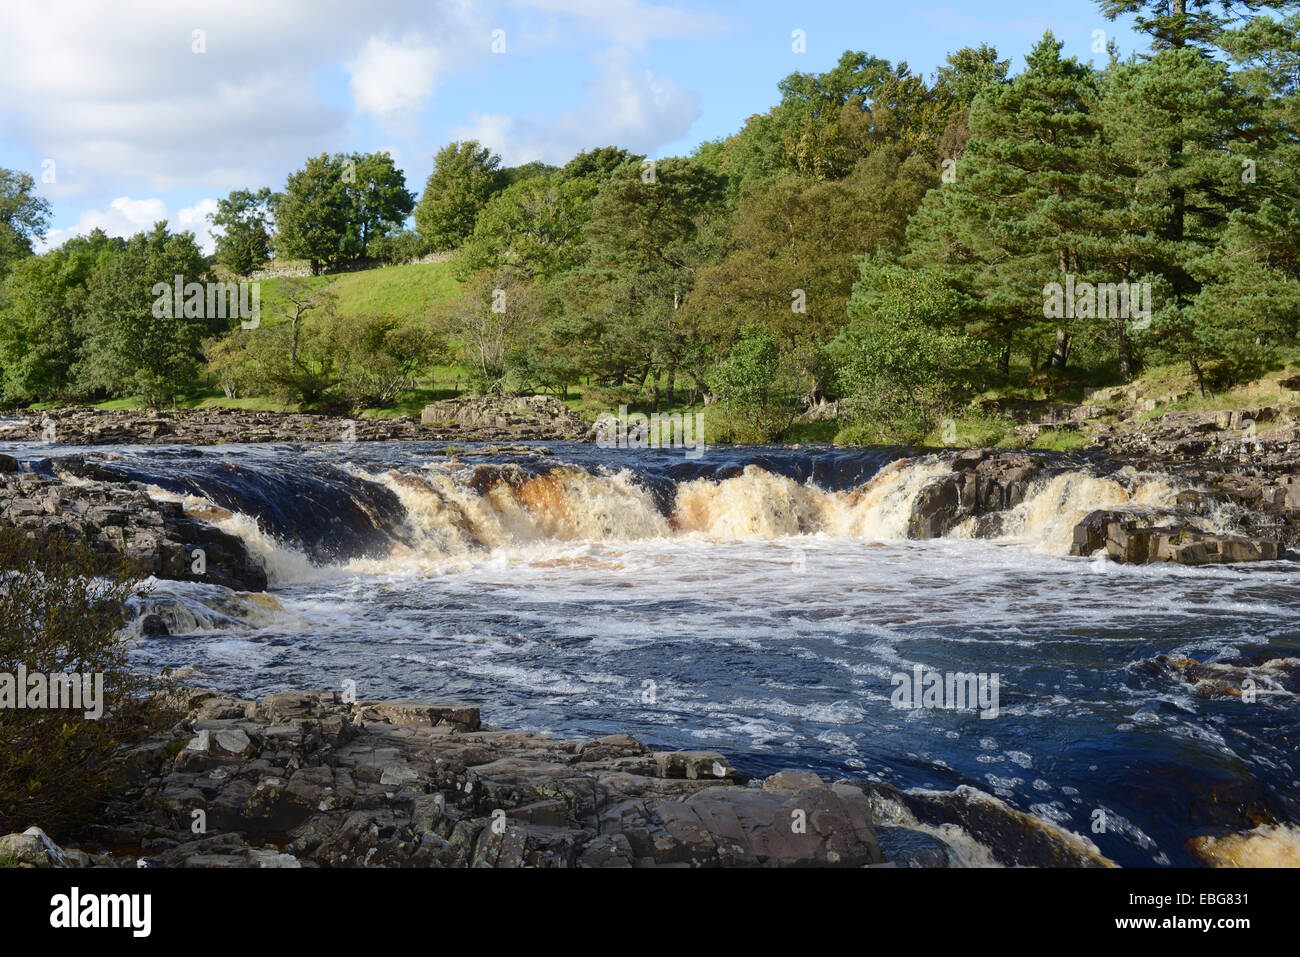 Low Force waterfall in Teesdale, UK - Stock Image